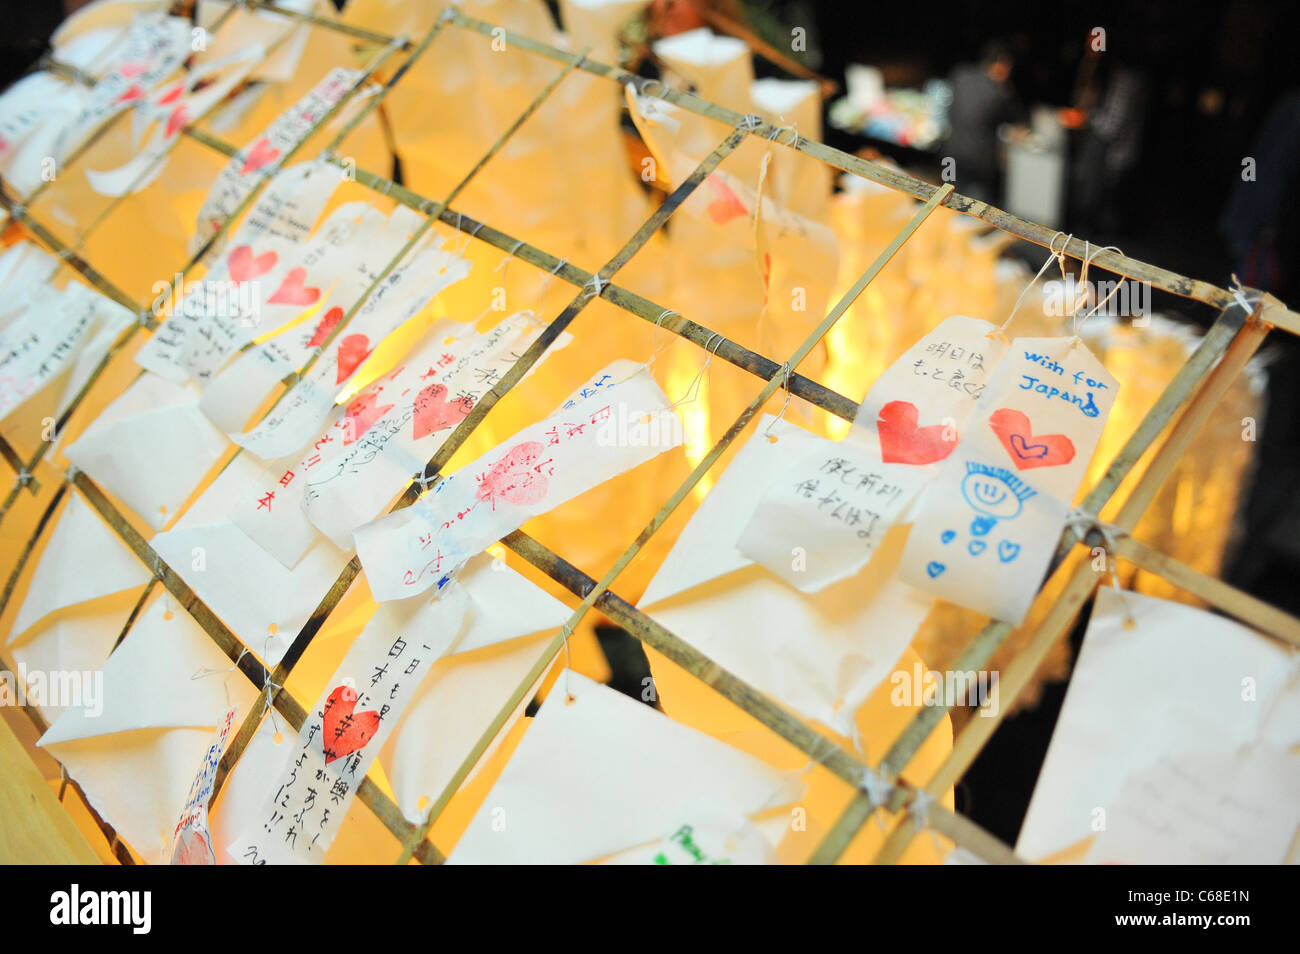 Wishes placed on Prayer Lanters in attendance for Concert for Japan, The Japan Society, New York, NY April 9, 2011. - Stock Image